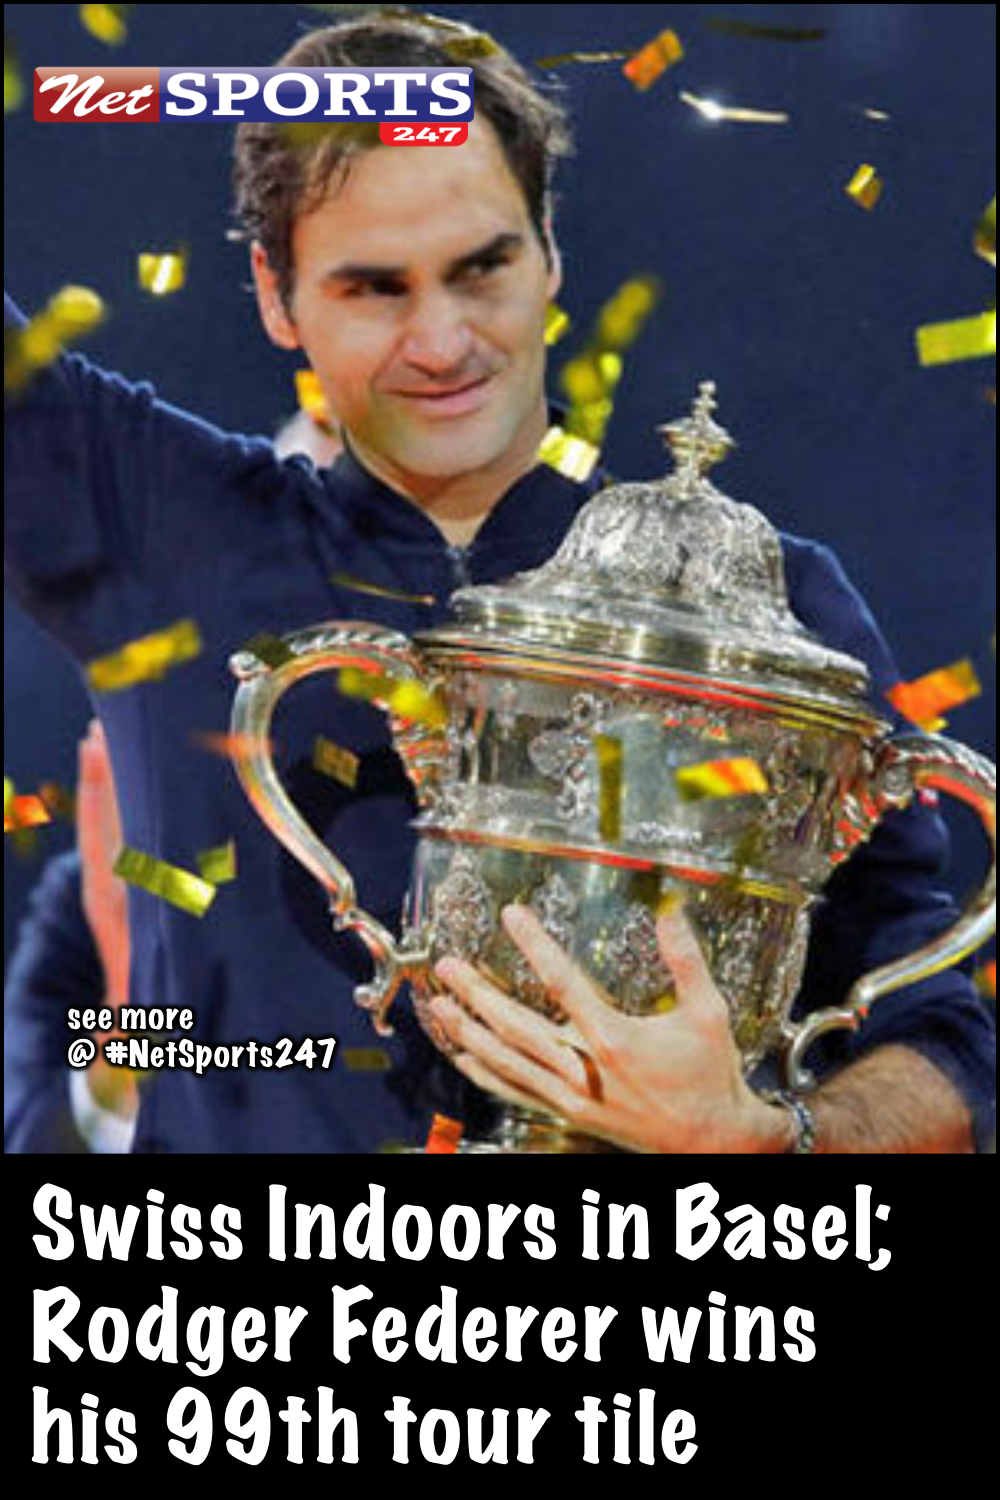 Swiss Indoors in Basel; Rodger Federer wins his 99th tour